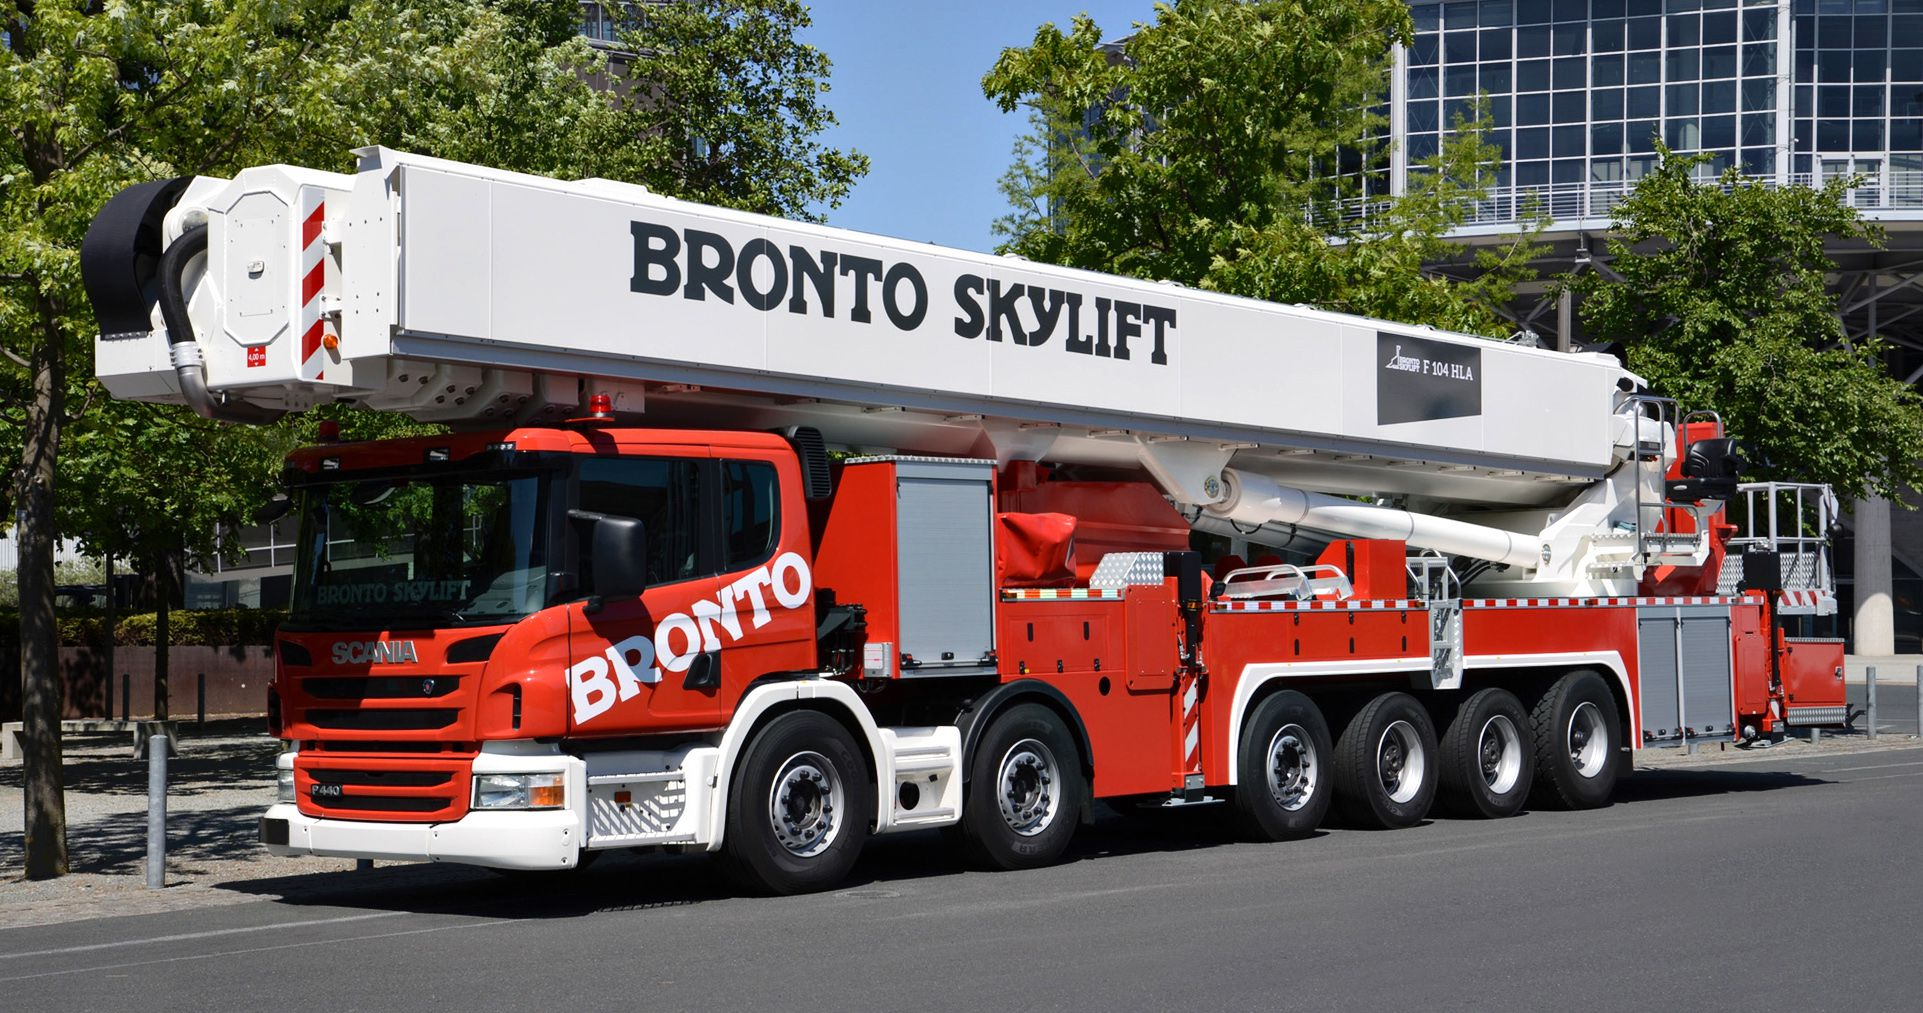 Bronto Skylift Enjoys 20 More Accurate Forecasts Hours